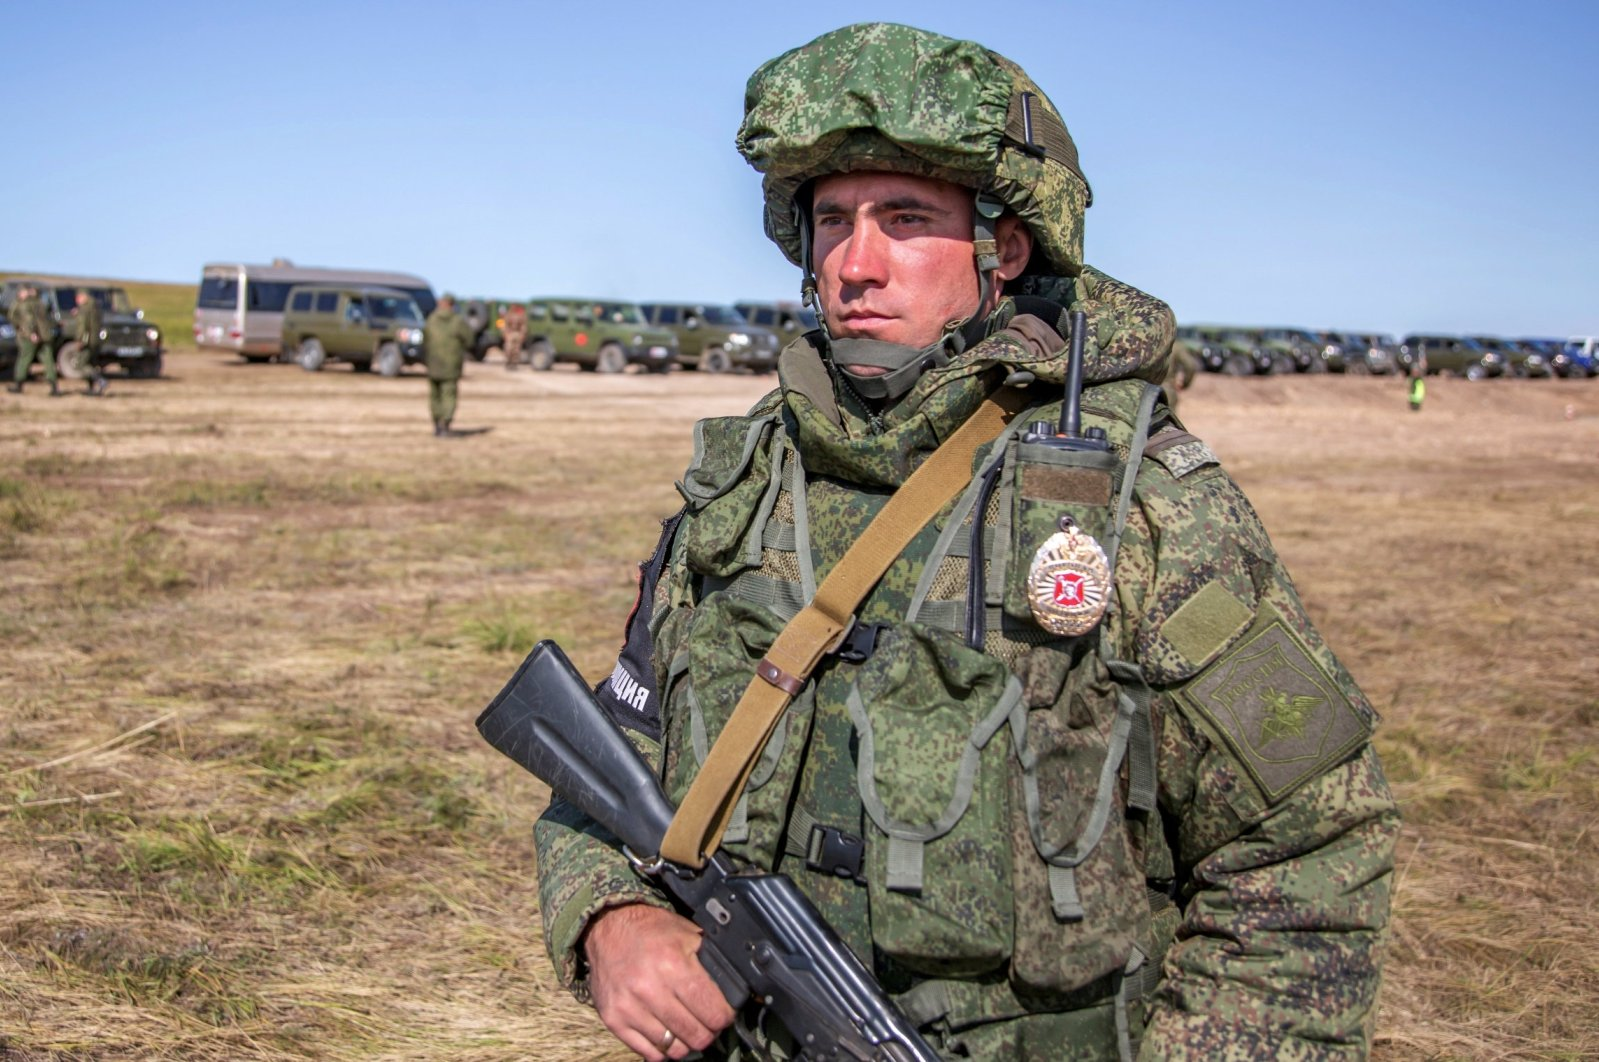 A Russian soldier guards an area during the military exercises in the Chita region, Eastern Siberia, during the Vostok 2018 exercises in Russia, Sept. 11, 2018. (AP)